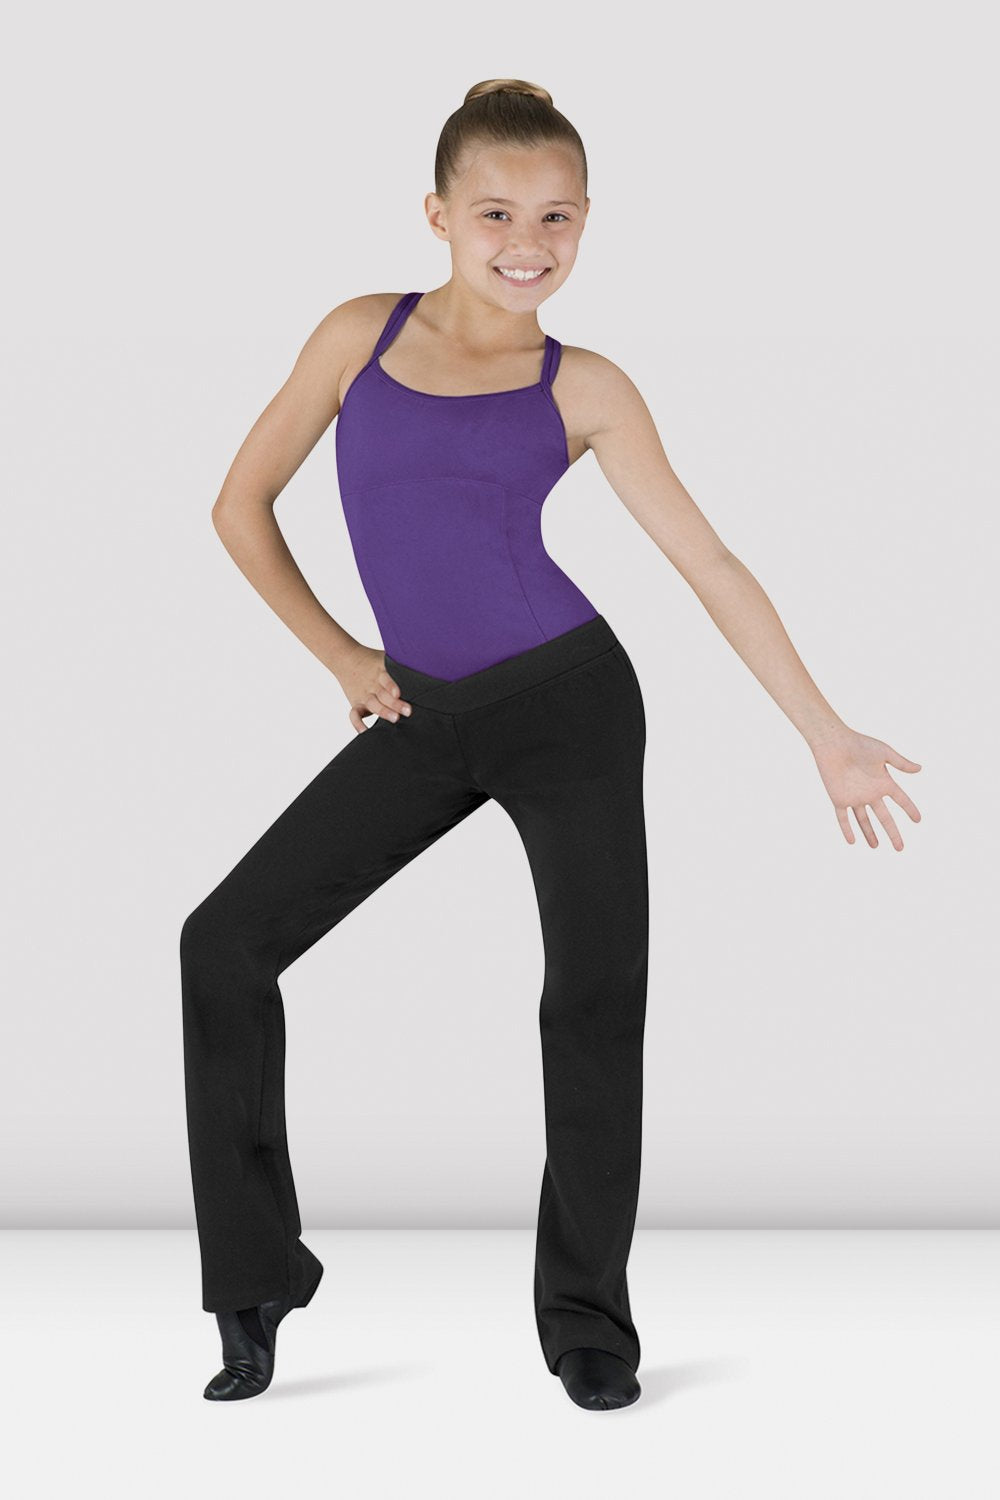 Girls V Front Boot Leg Jazz Pant - BLOCH US